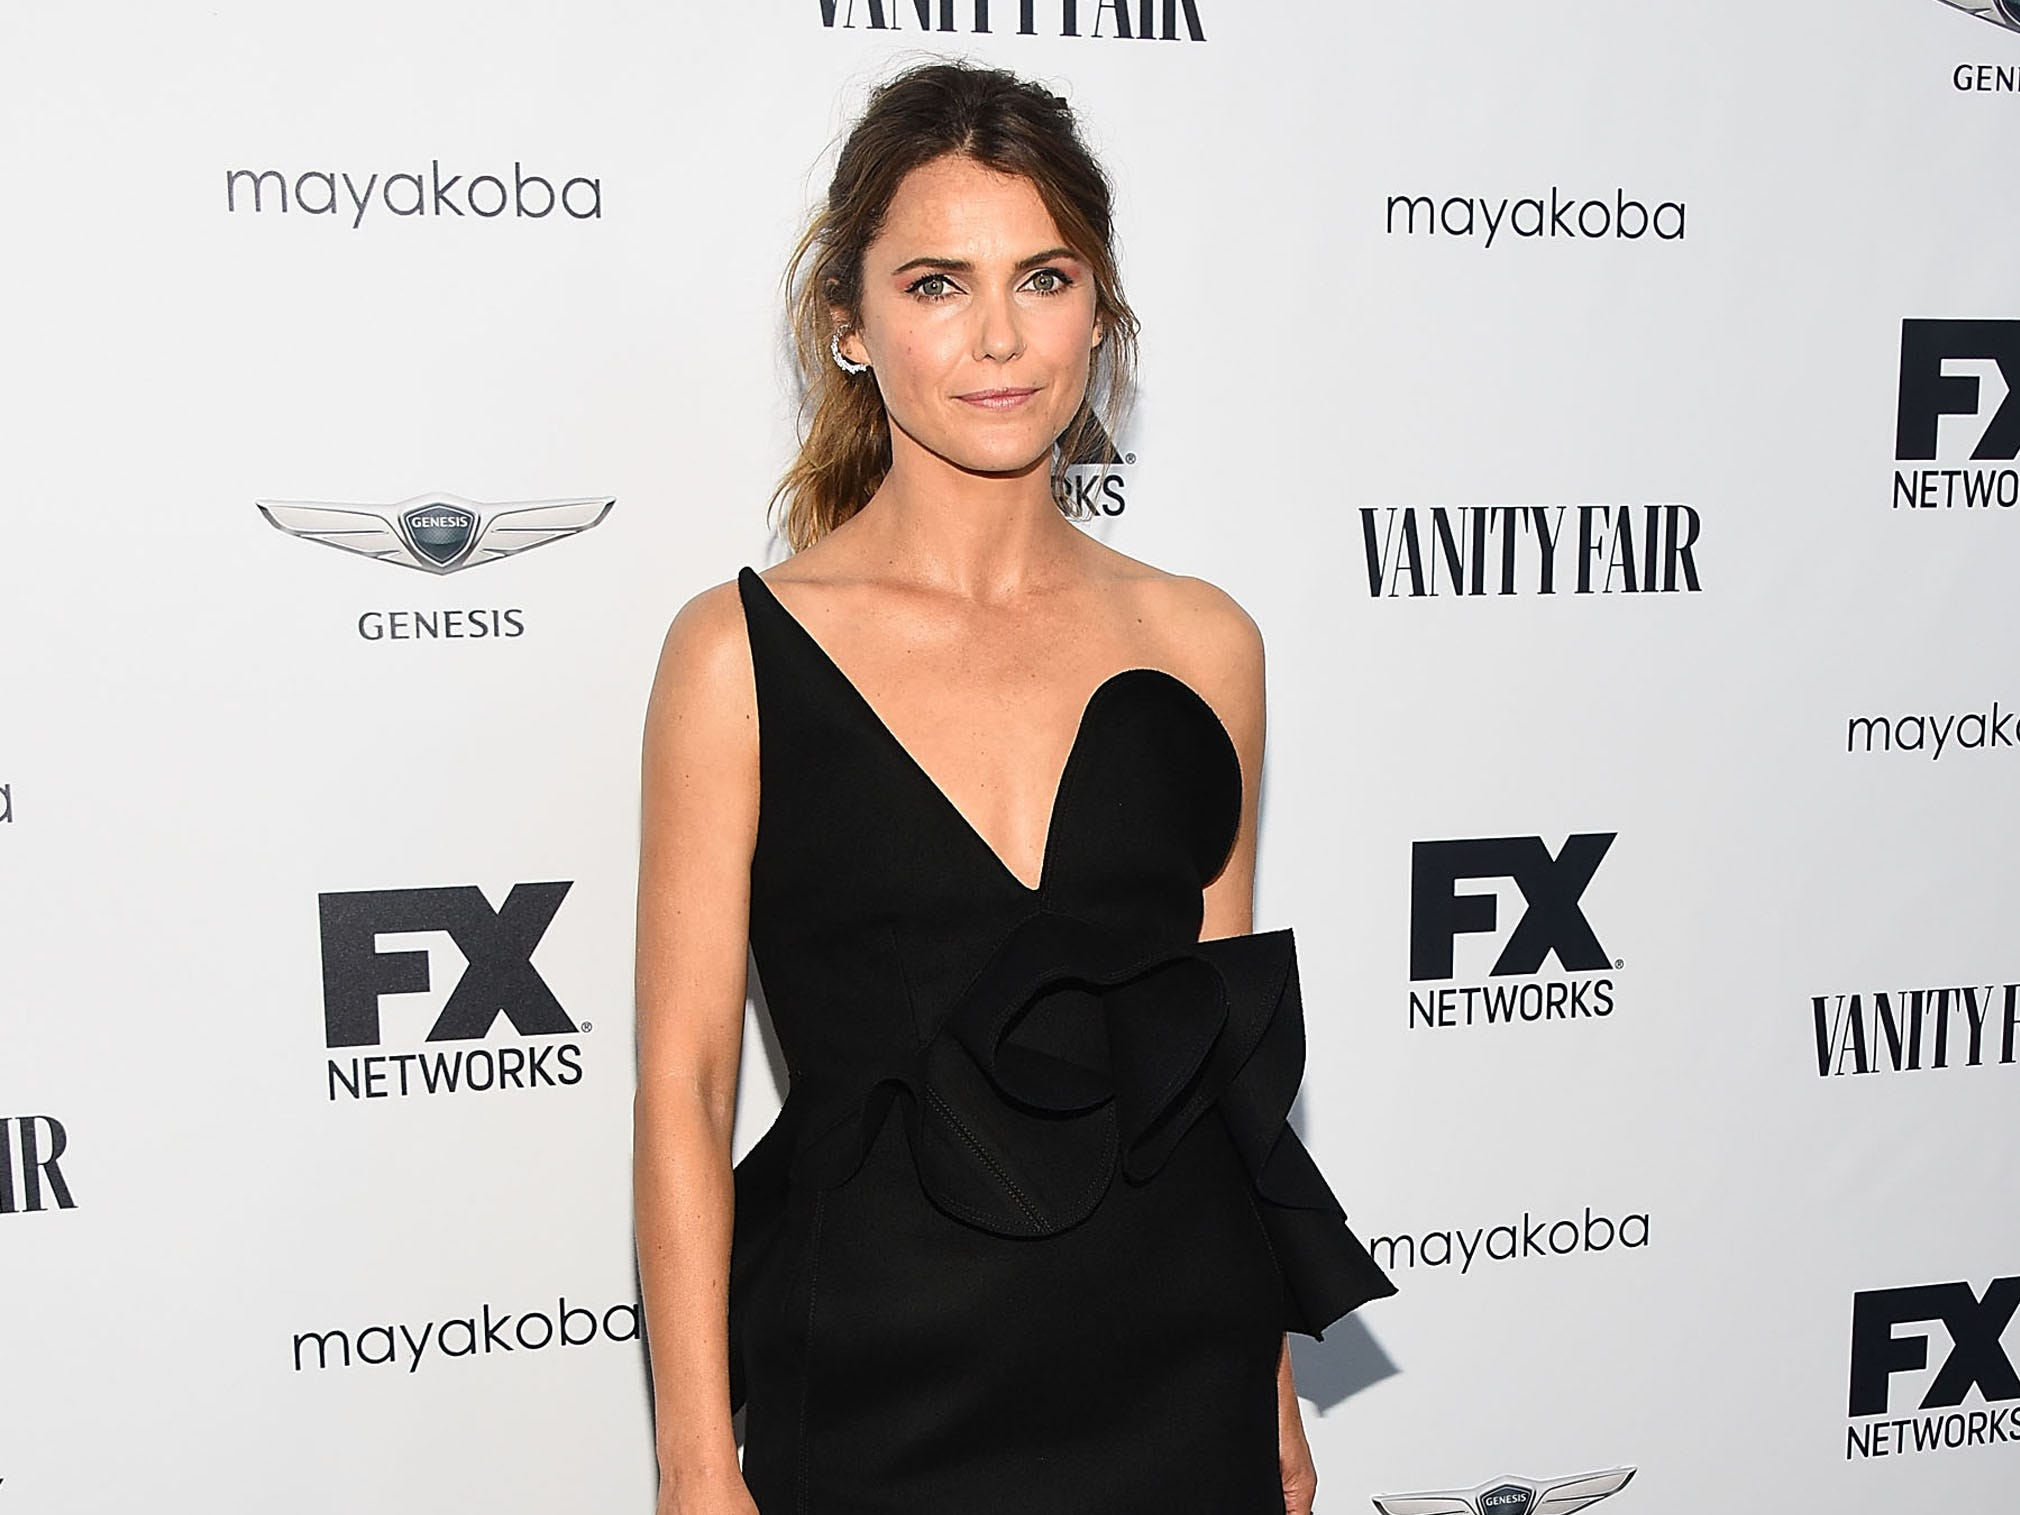 LOS ANGELES, CA - SEPTEMBER 16:  Keri Russell attends FX Networks celebration of their Emmy nominees at CRAFT LA on September 16, 2018 in Los Angeles, California.  (Photo by Araya Diaz/Getty Images) ORG XMIT: 775226231 ORIG FILE ID: 1034589356